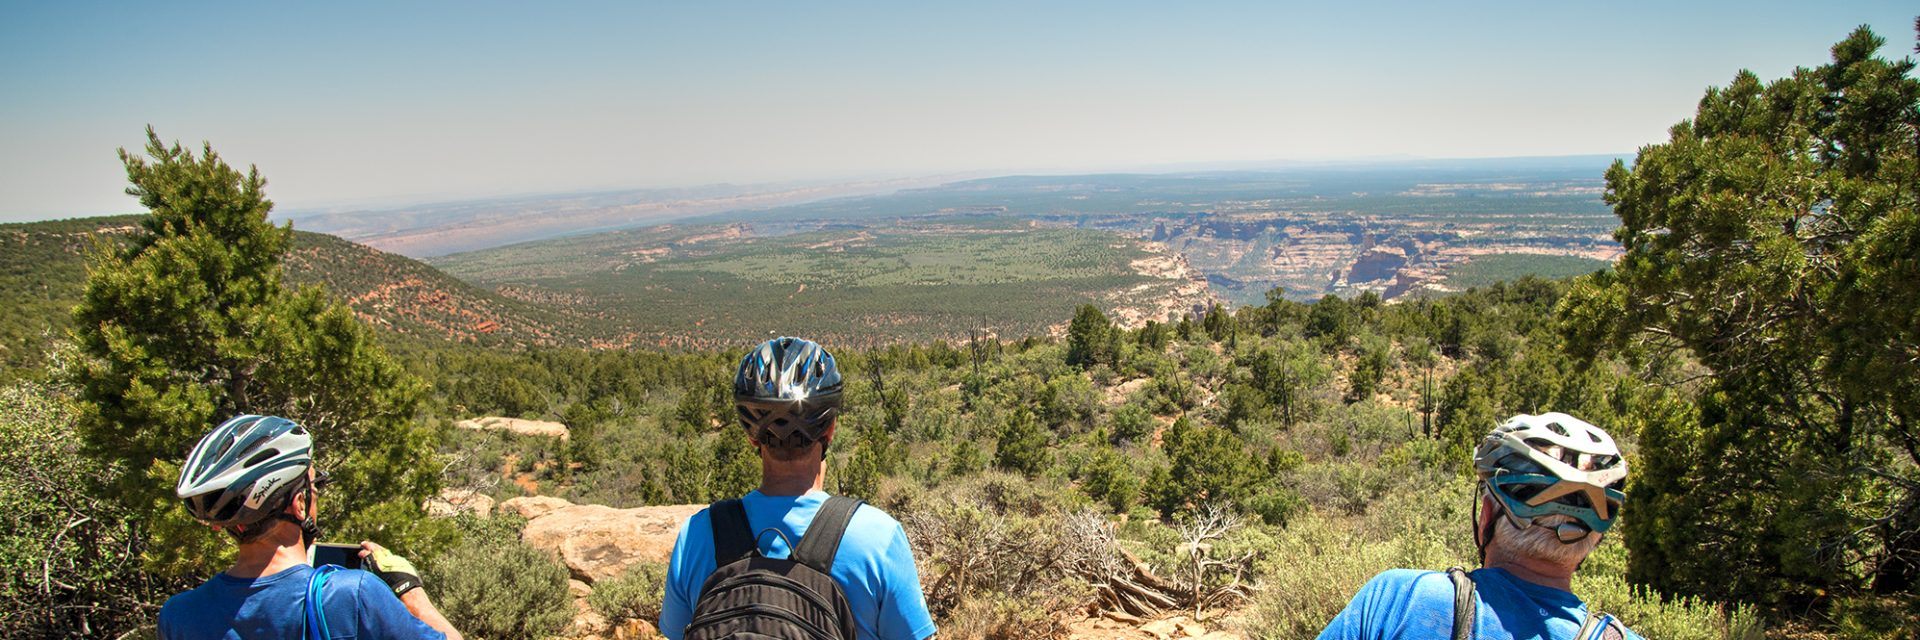 The Milk Ranch Road Overlook gives Bears Ears riders a view into Arch Canyon with Comb Ridge in the distance